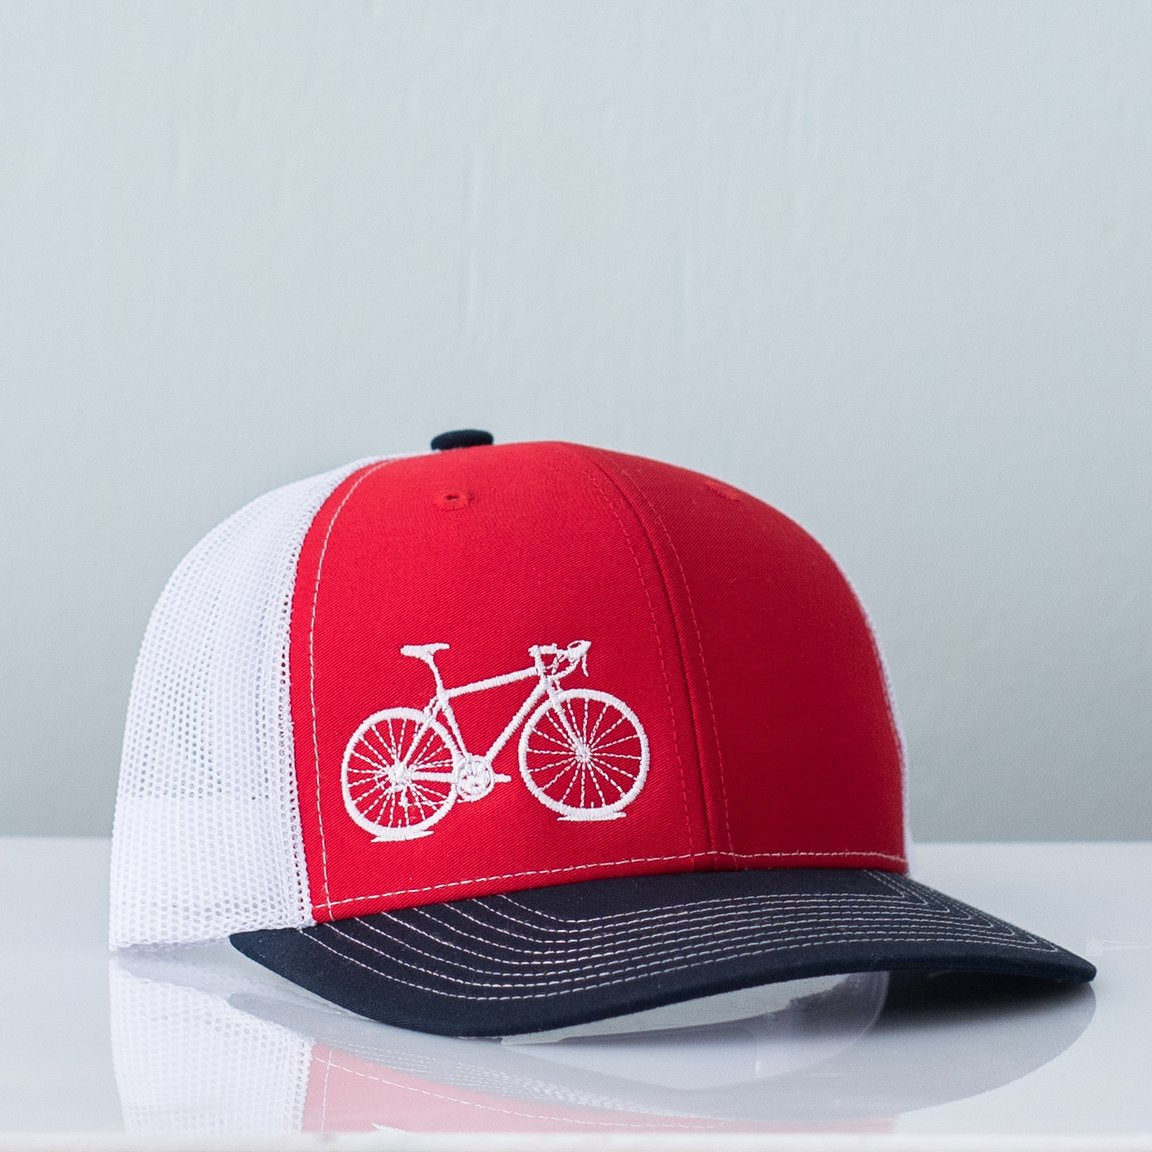 Red white and blue mesh back trucker hat embroidered with a cream bicycle